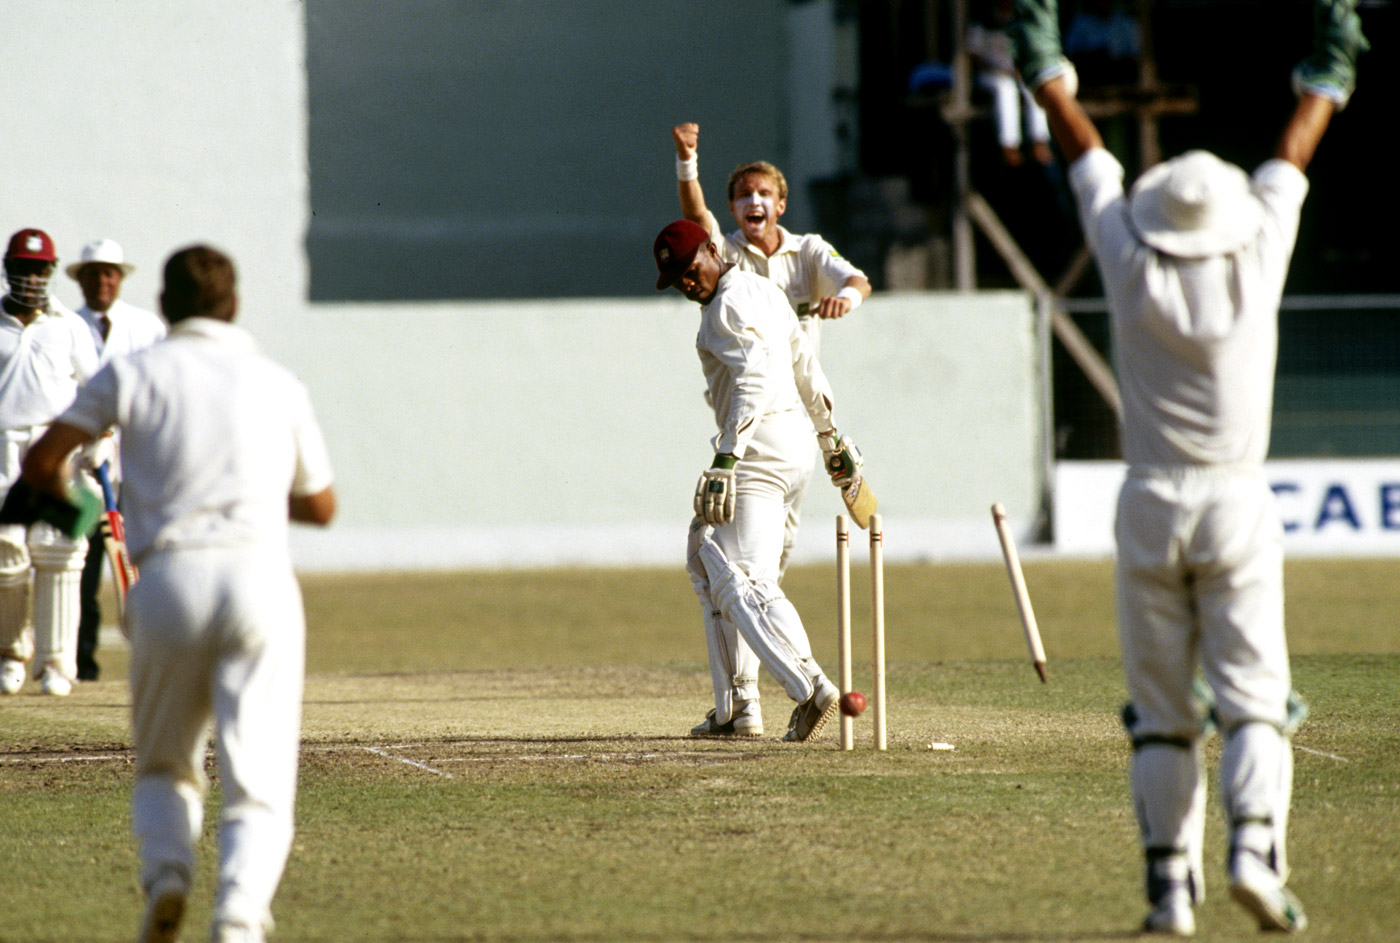 Keith Arthurton is bowled by Allan Donald for 22 in the second innings